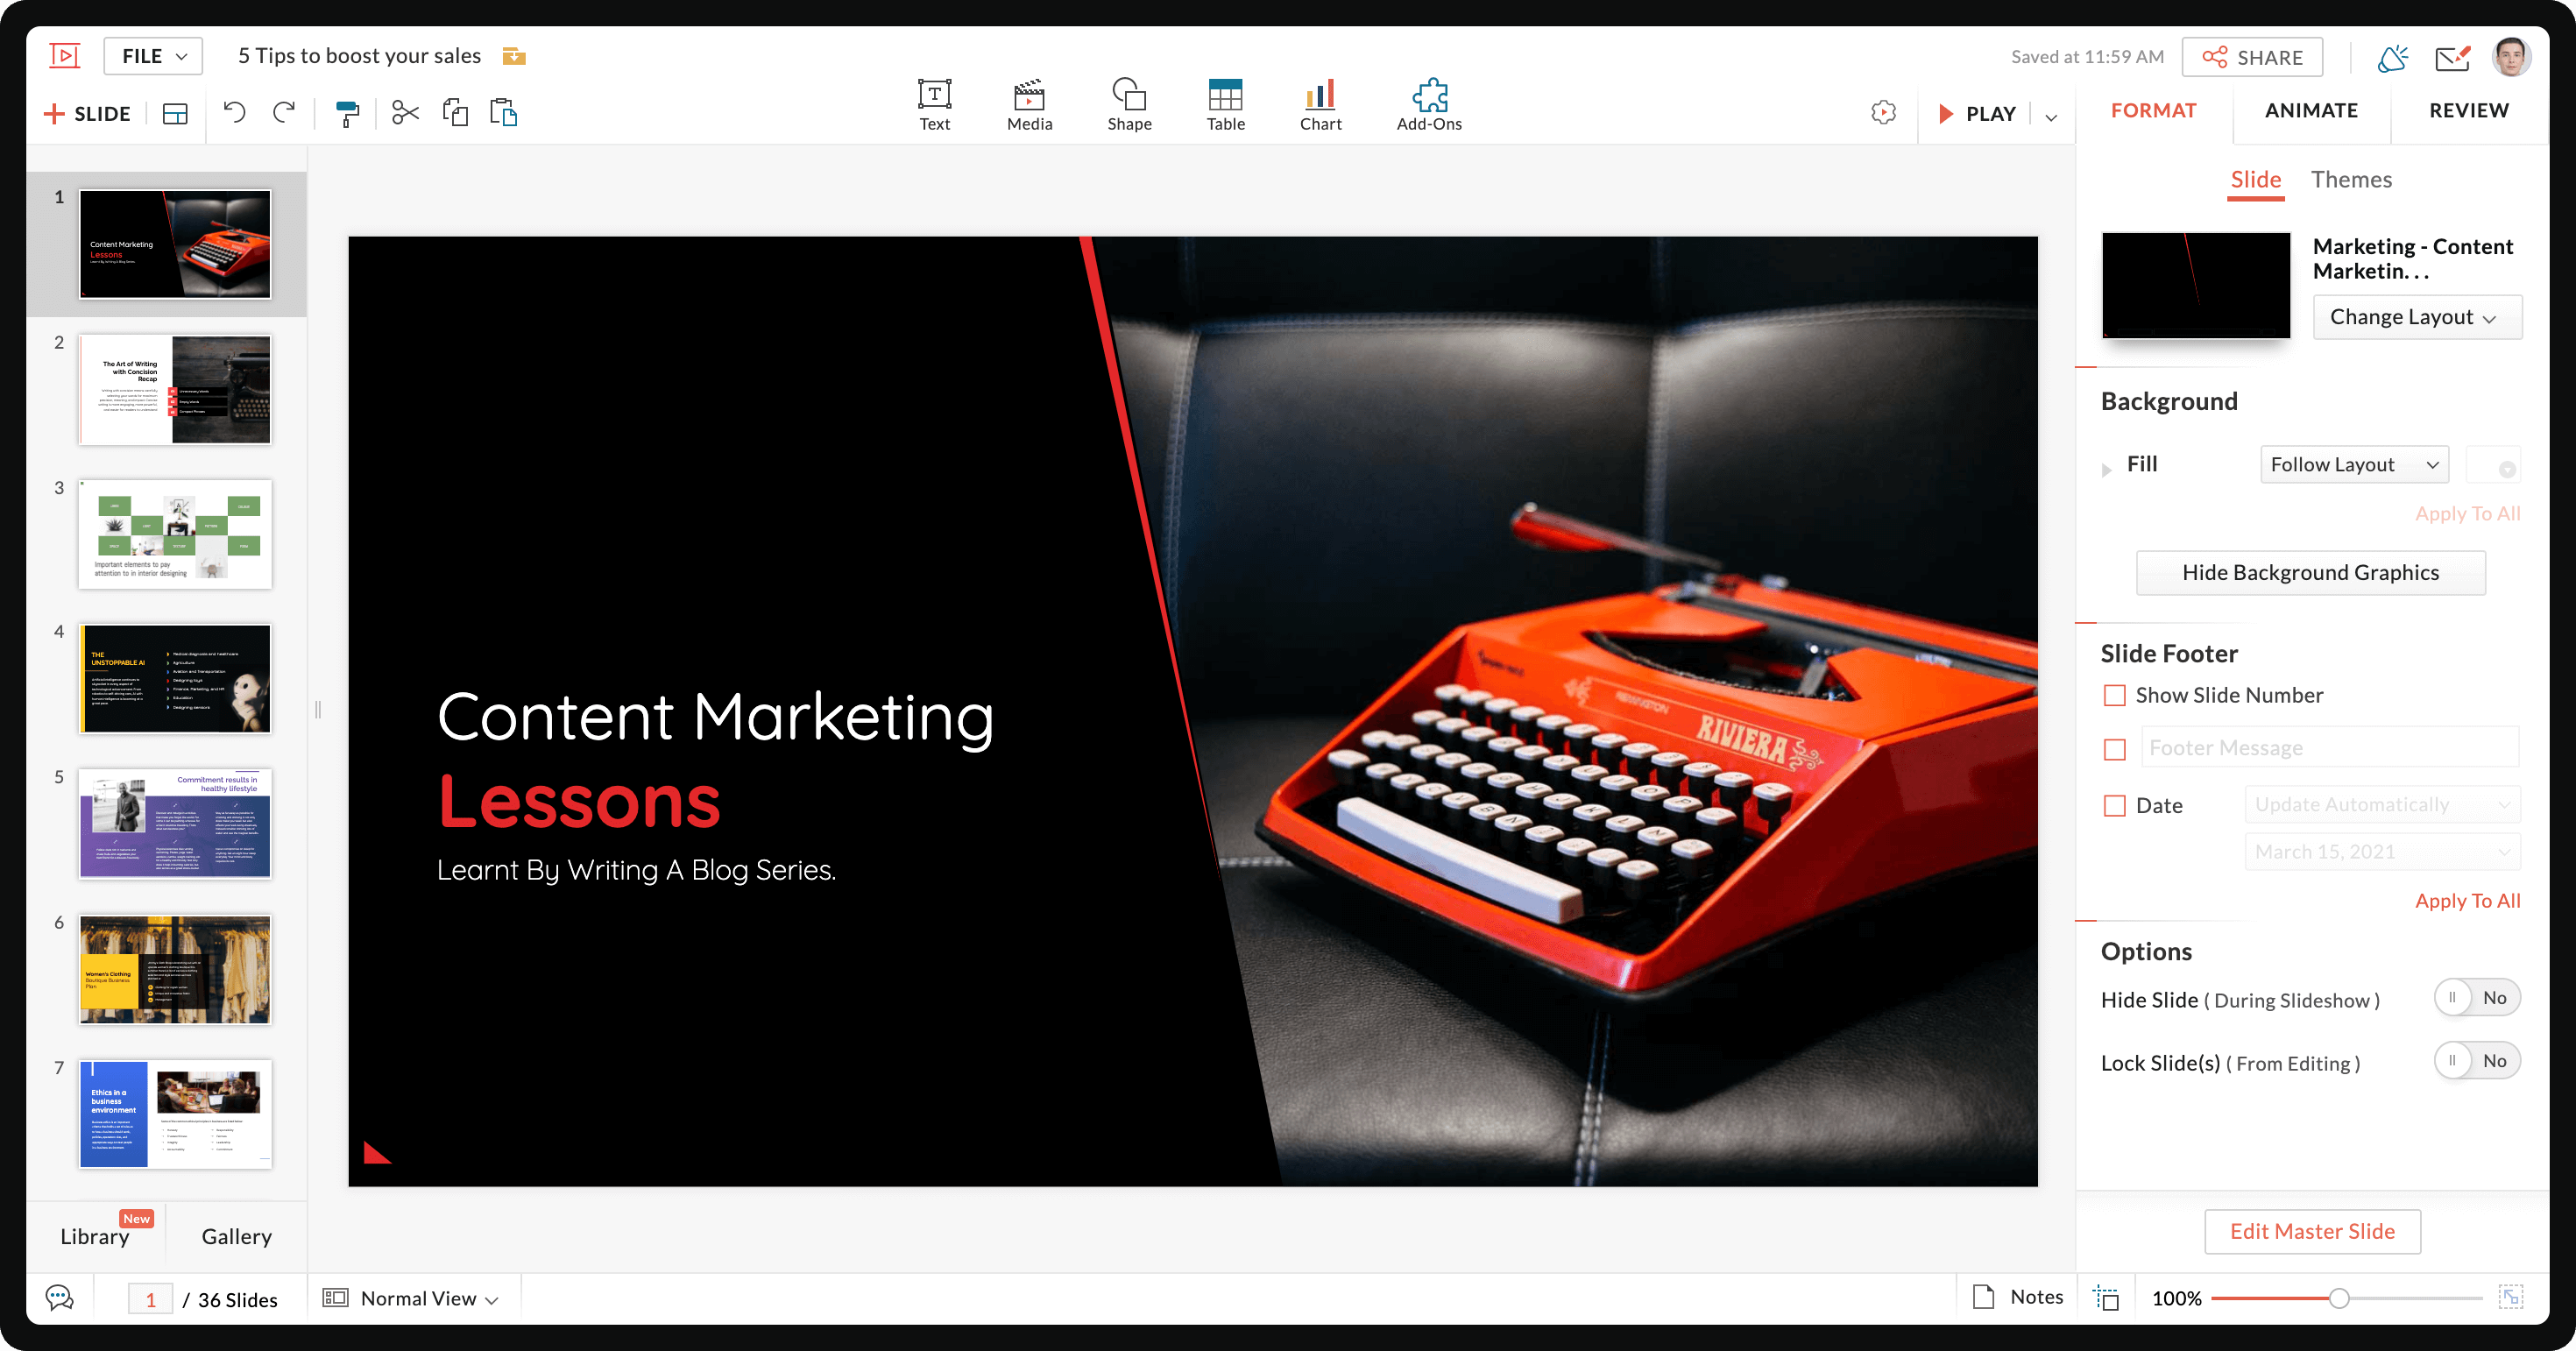 Opens the presentation in the main interface of Show